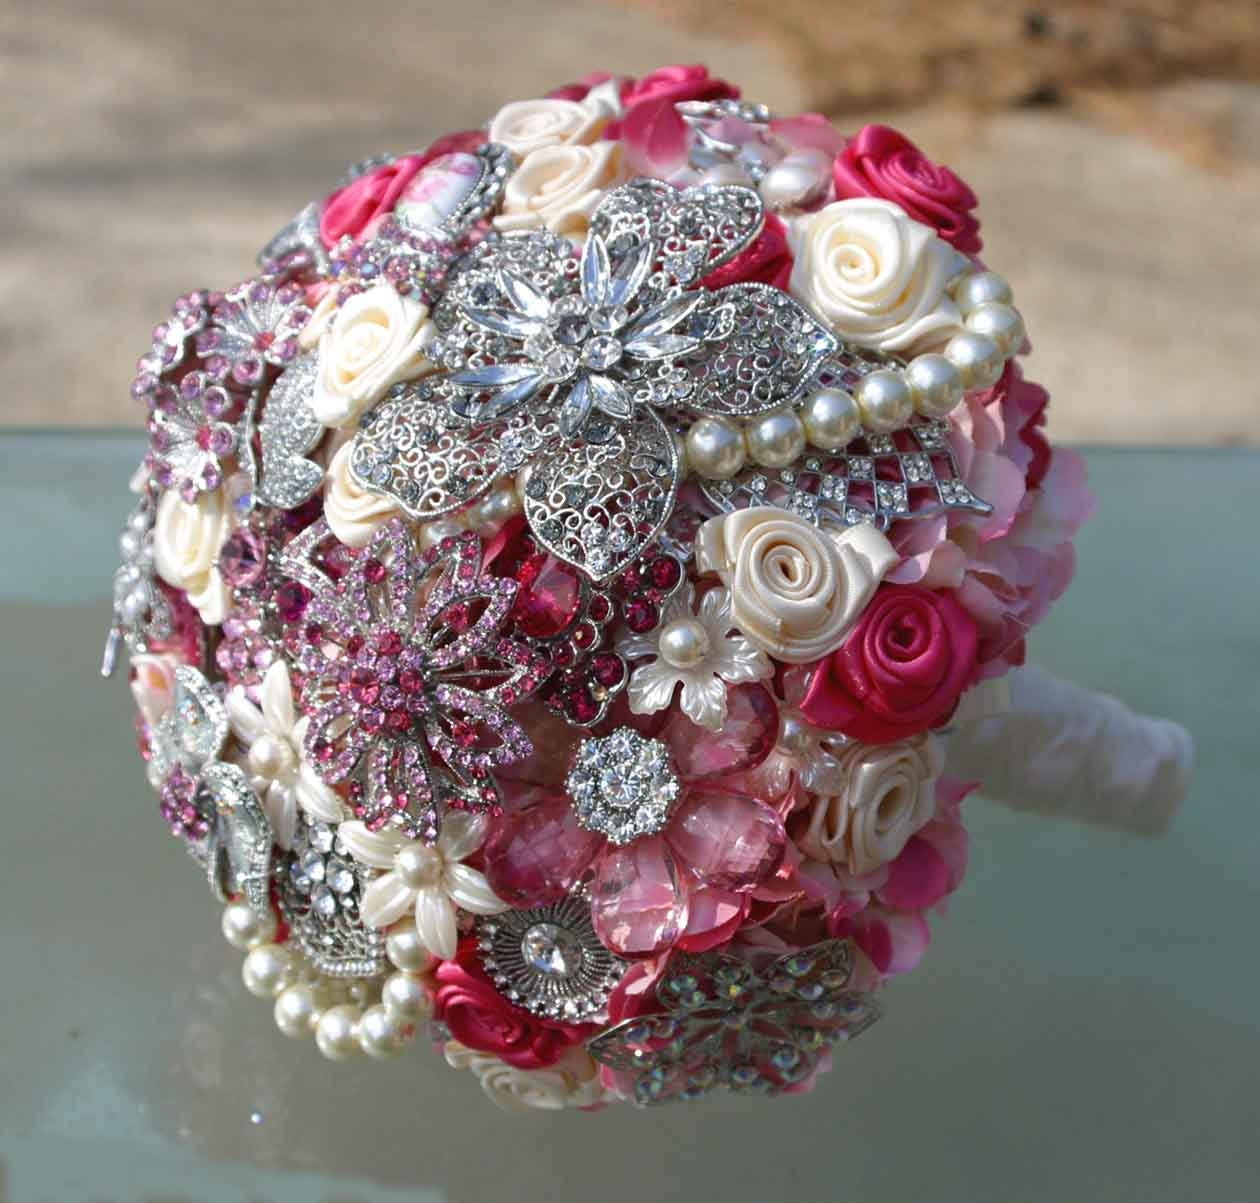 Vintage style broach pink wedding bouquet - Deposit on made to order bridal bouquet - Heirloom Bouquet